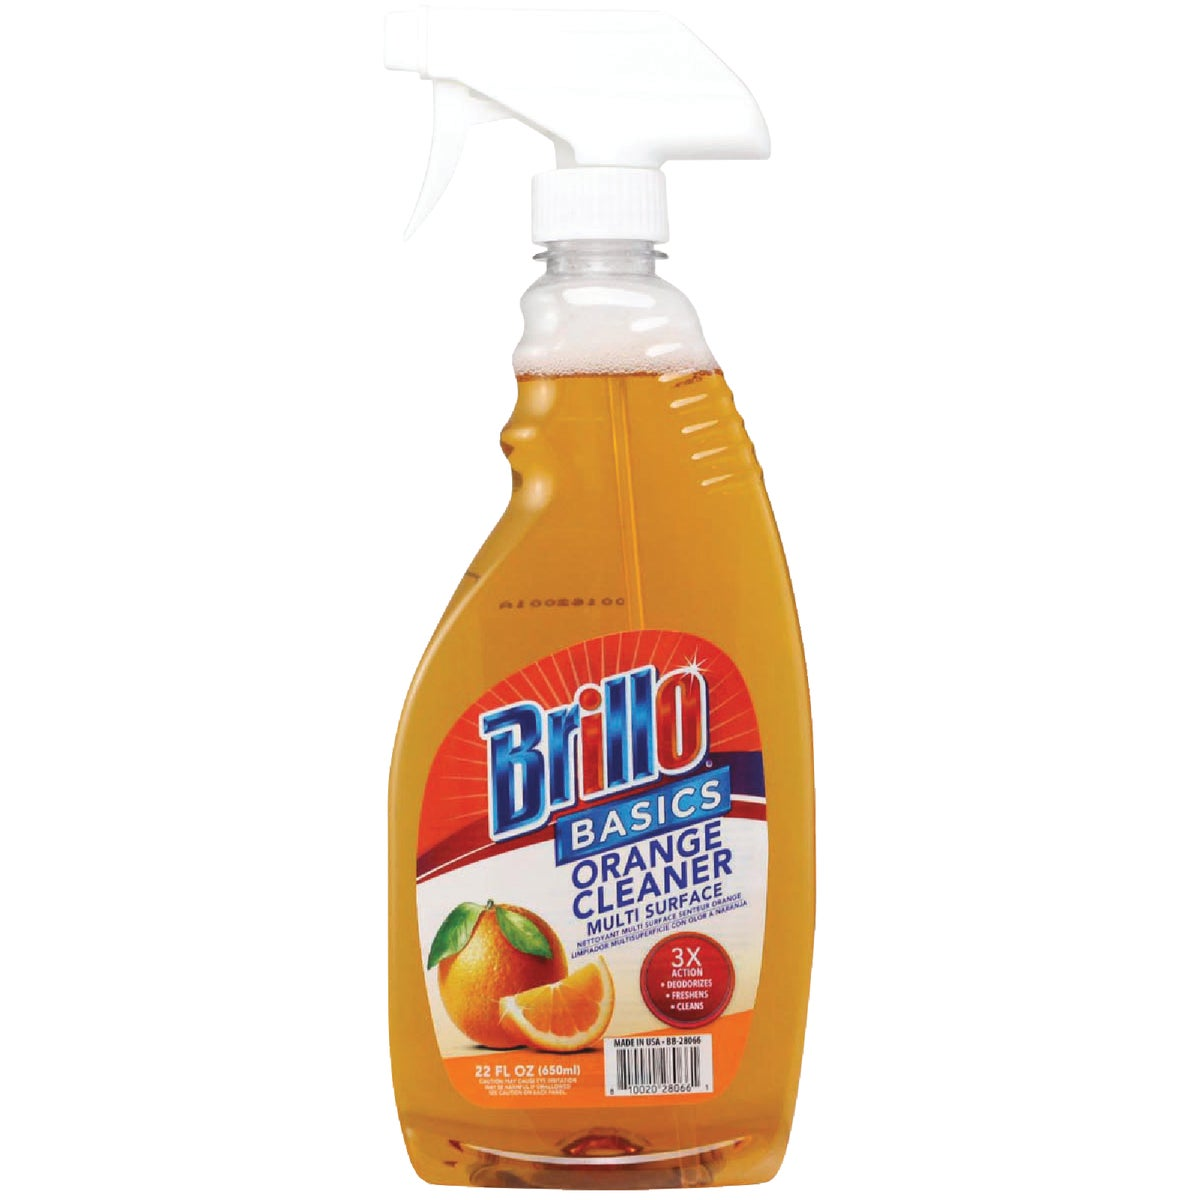 ORANGE SOLUTION CLEANER - 90705 by Personal Care Prod